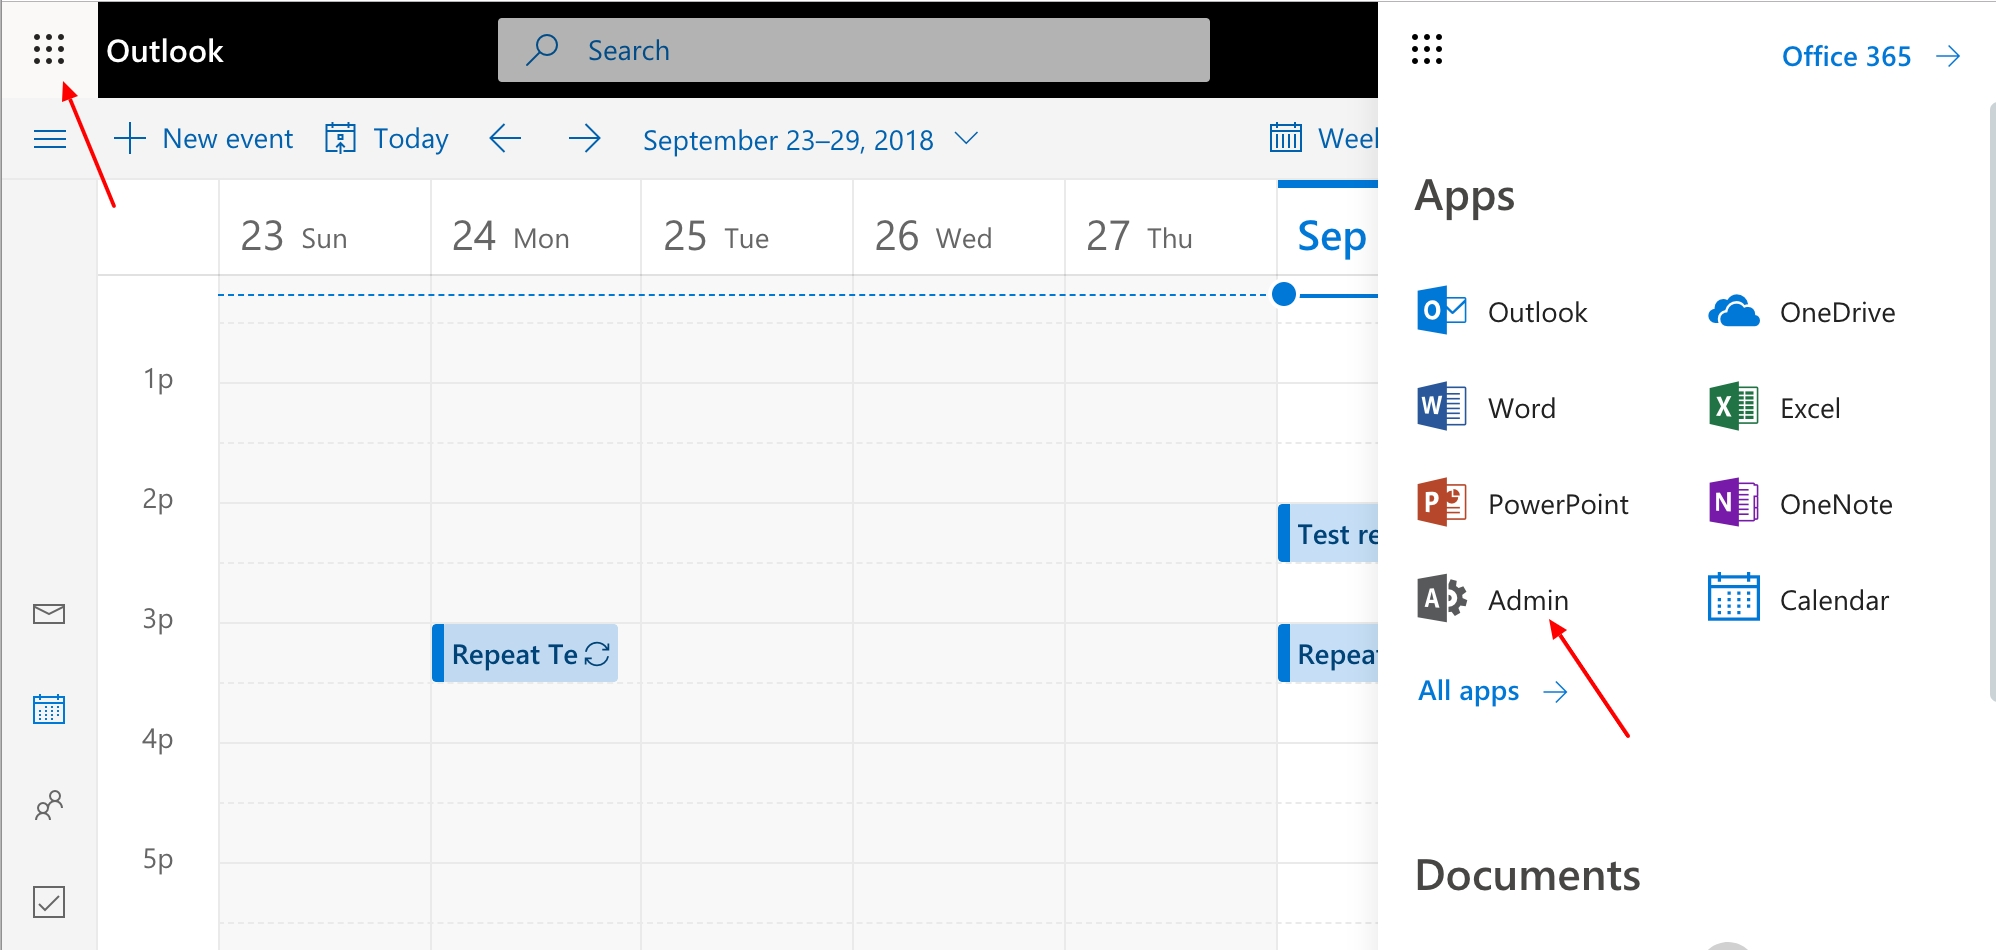 Create Meeting Room Calendars In Office 365 – Robin Help Center Printing Calendar From Office 365